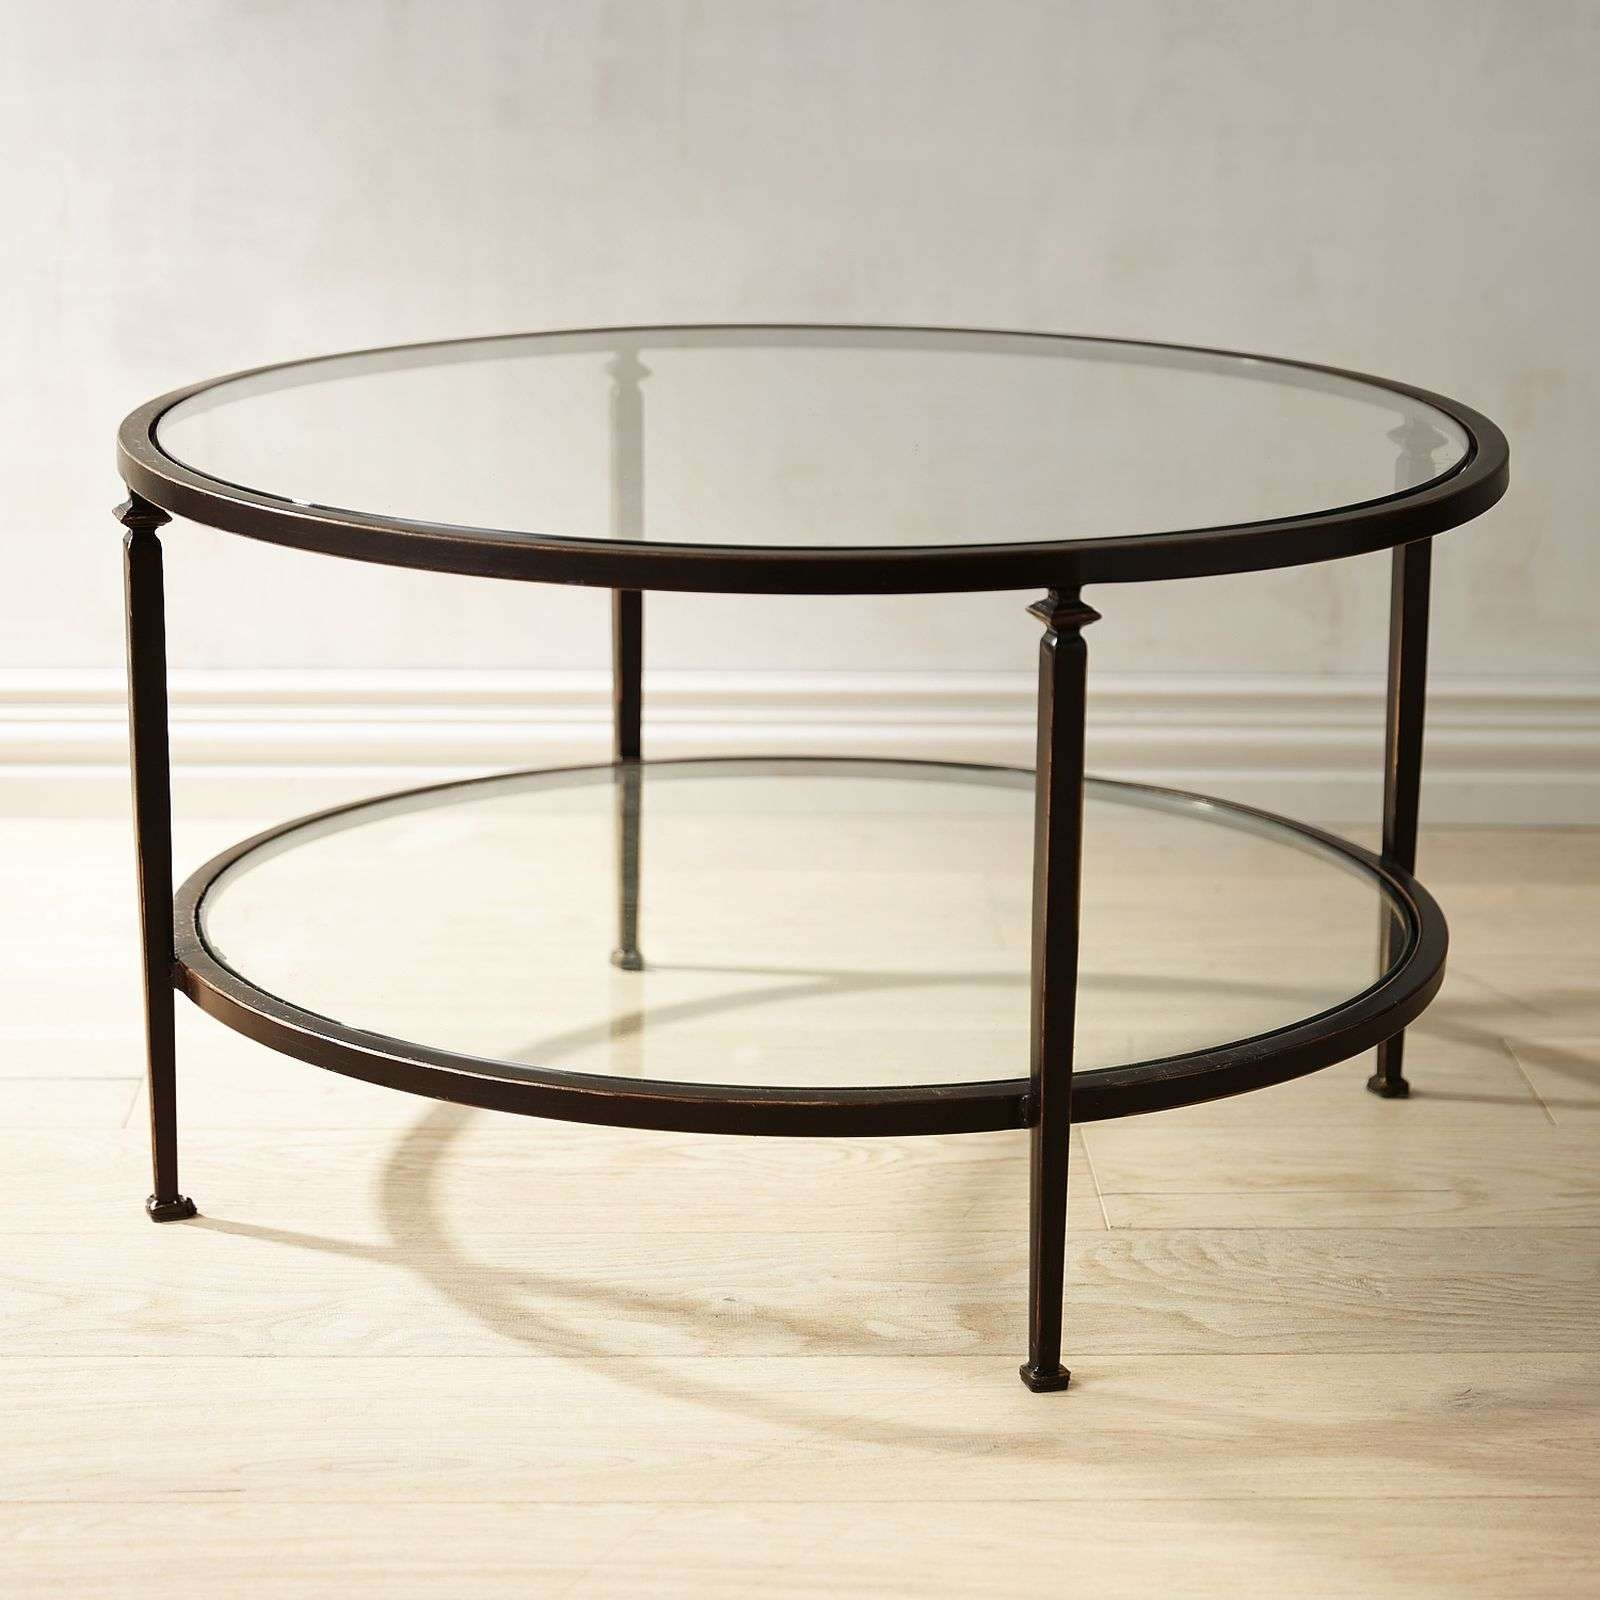 Coffee Table : Awesome Glass And Metal Coffee Table Wood Coffee For 2018 Metal Coffee Tables With Glass Top (View 20 of 20)